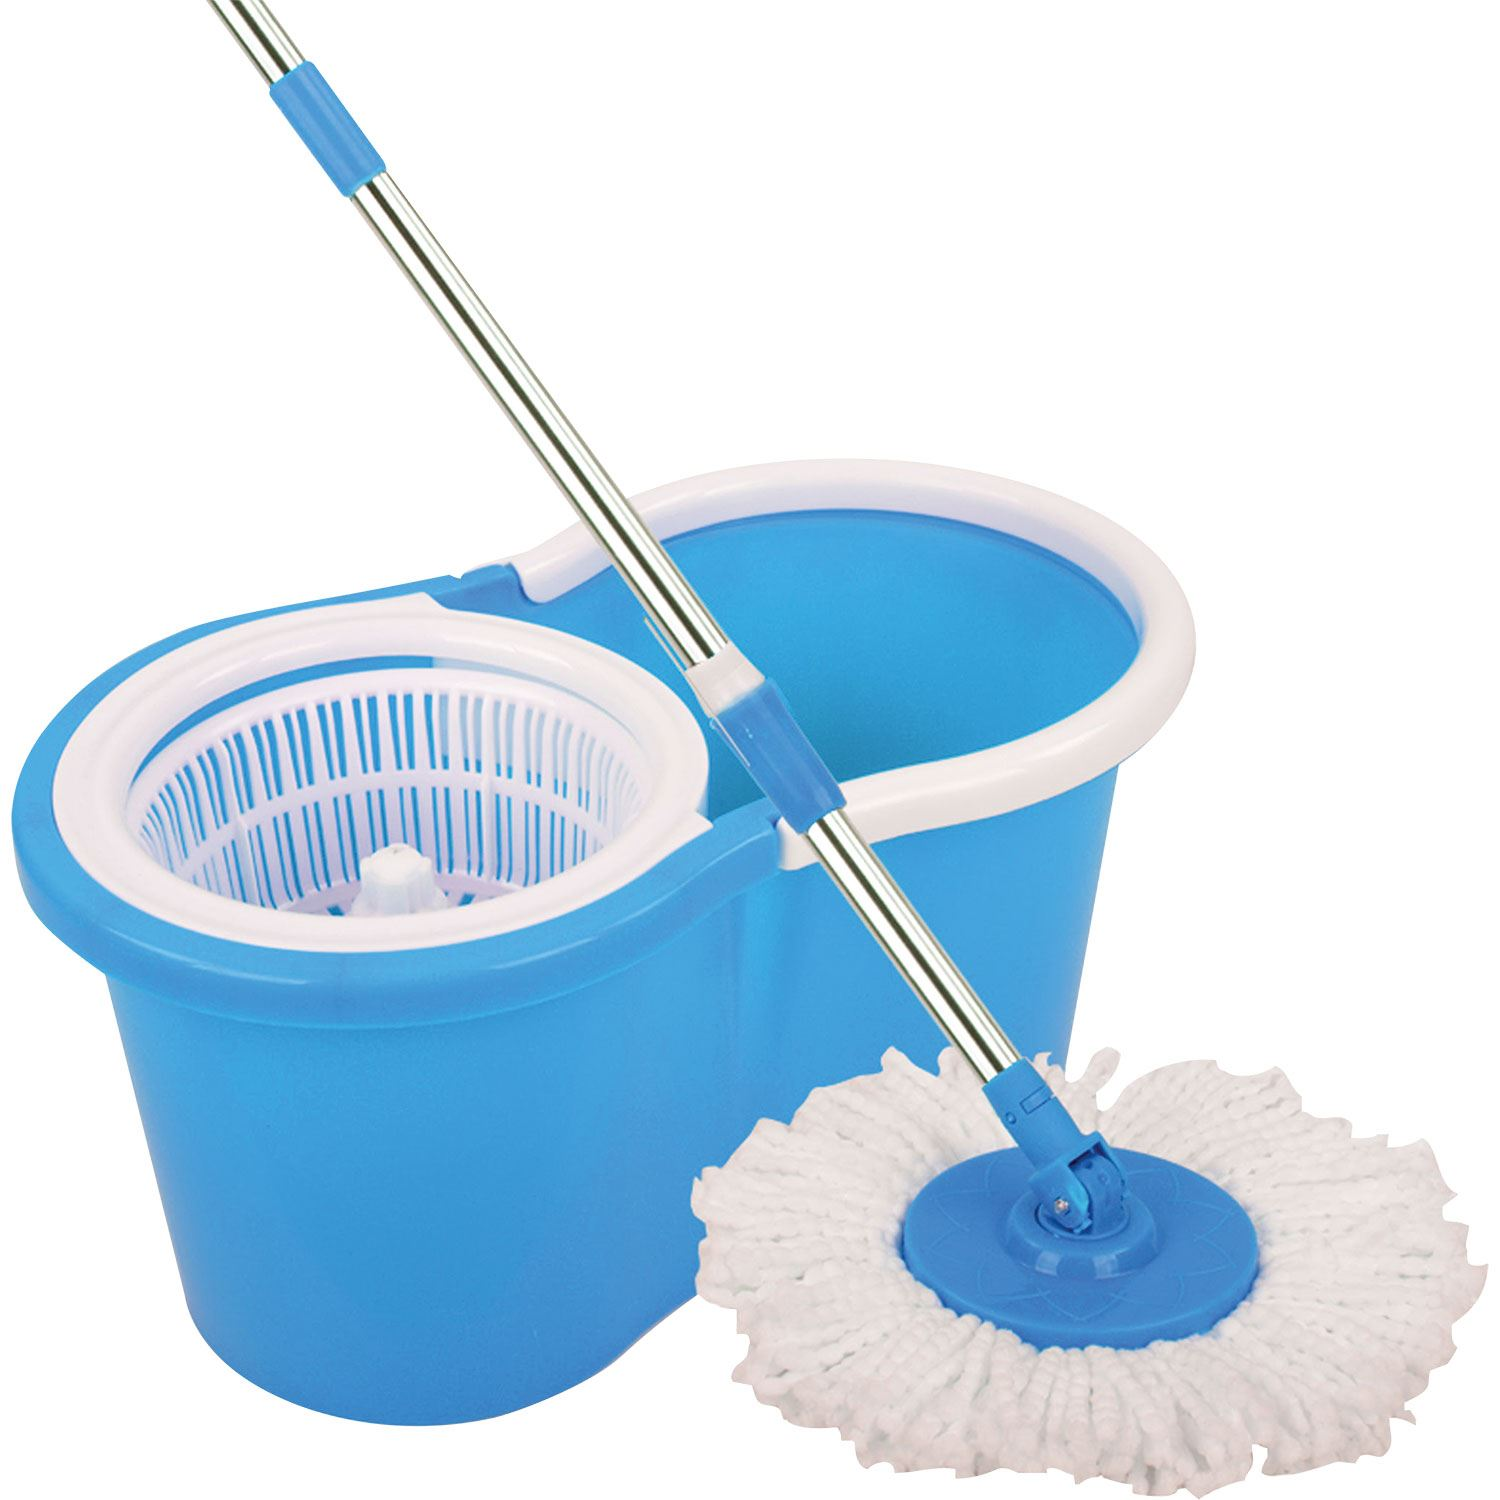 Magic Spin Mop Microfiber Spining W Bucket 2 Heads 360